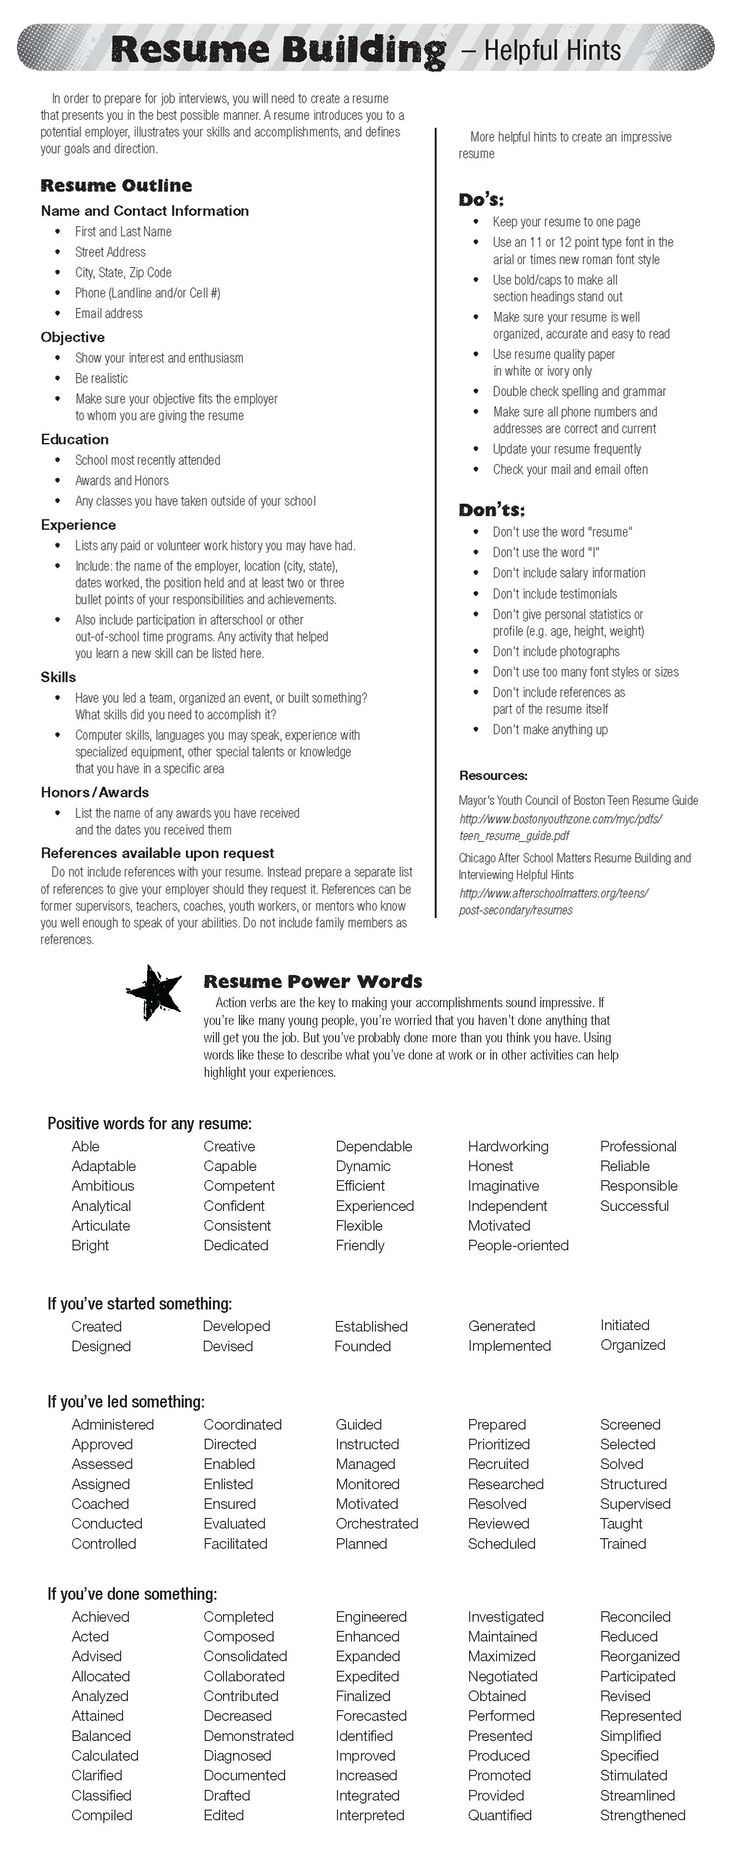 Opposenewapstandardsus  Fascinating  Ideas About Resume On Pinterest  Cv Format Resume Cv And  With Foxy  Ideas About Resume On Pinterest  Cv Format Resume Cv And Resume Templates With Endearing Resume Reason For Leaving Also Resume Posting In Addition Clerical Resume Sample And Microsoft Word Free Resume Templates As Well As Resume Examples For Medical Assistant Additionally Office Job Resume From Pinterestcom With Opposenewapstandardsus  Foxy  Ideas About Resume On Pinterest  Cv Format Resume Cv And  With Endearing  Ideas About Resume On Pinterest  Cv Format Resume Cv And Resume Templates And Fascinating Resume Reason For Leaving Also Resume Posting In Addition Clerical Resume Sample From Pinterestcom